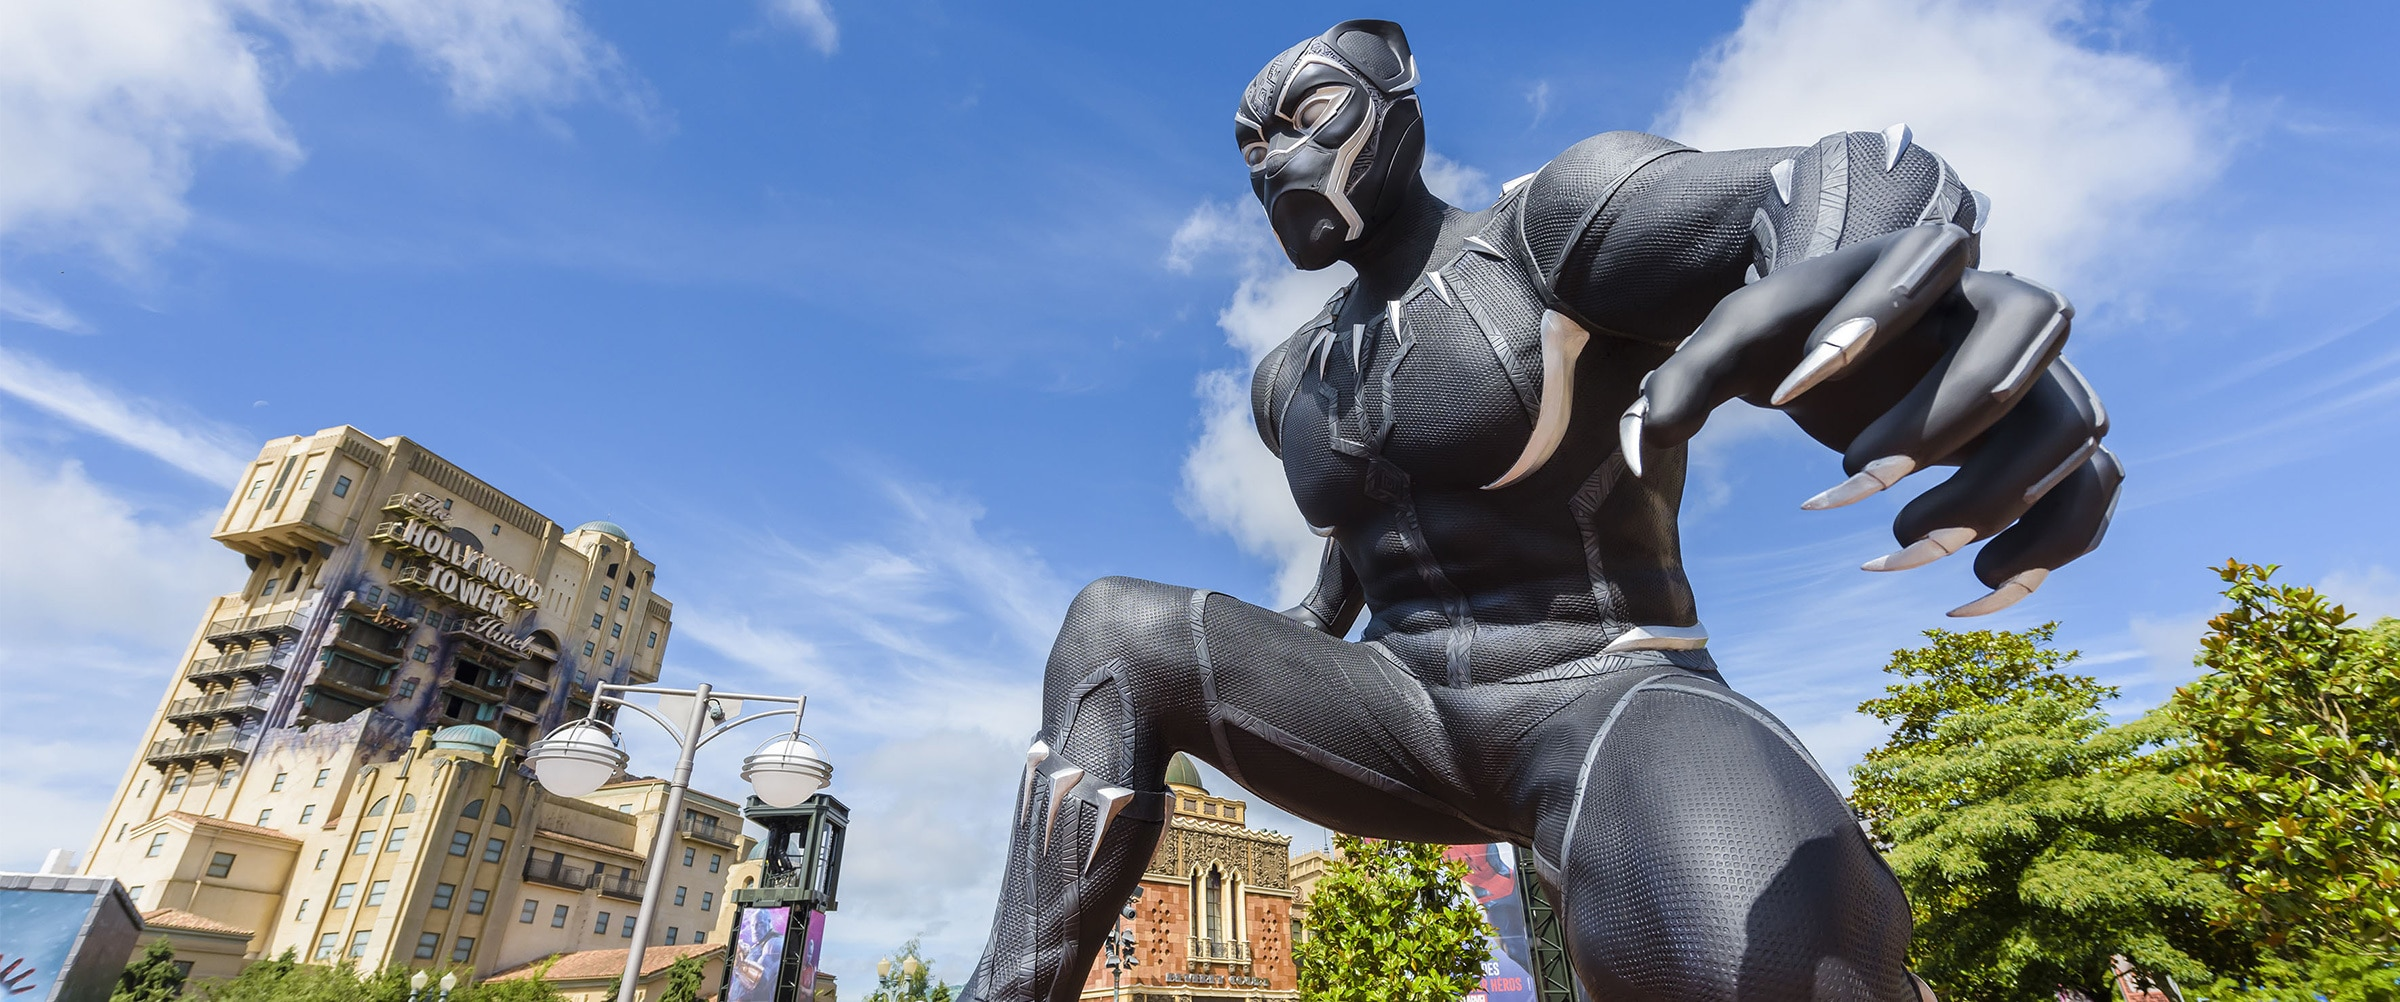 Marvel Summer in Disneyland Paris